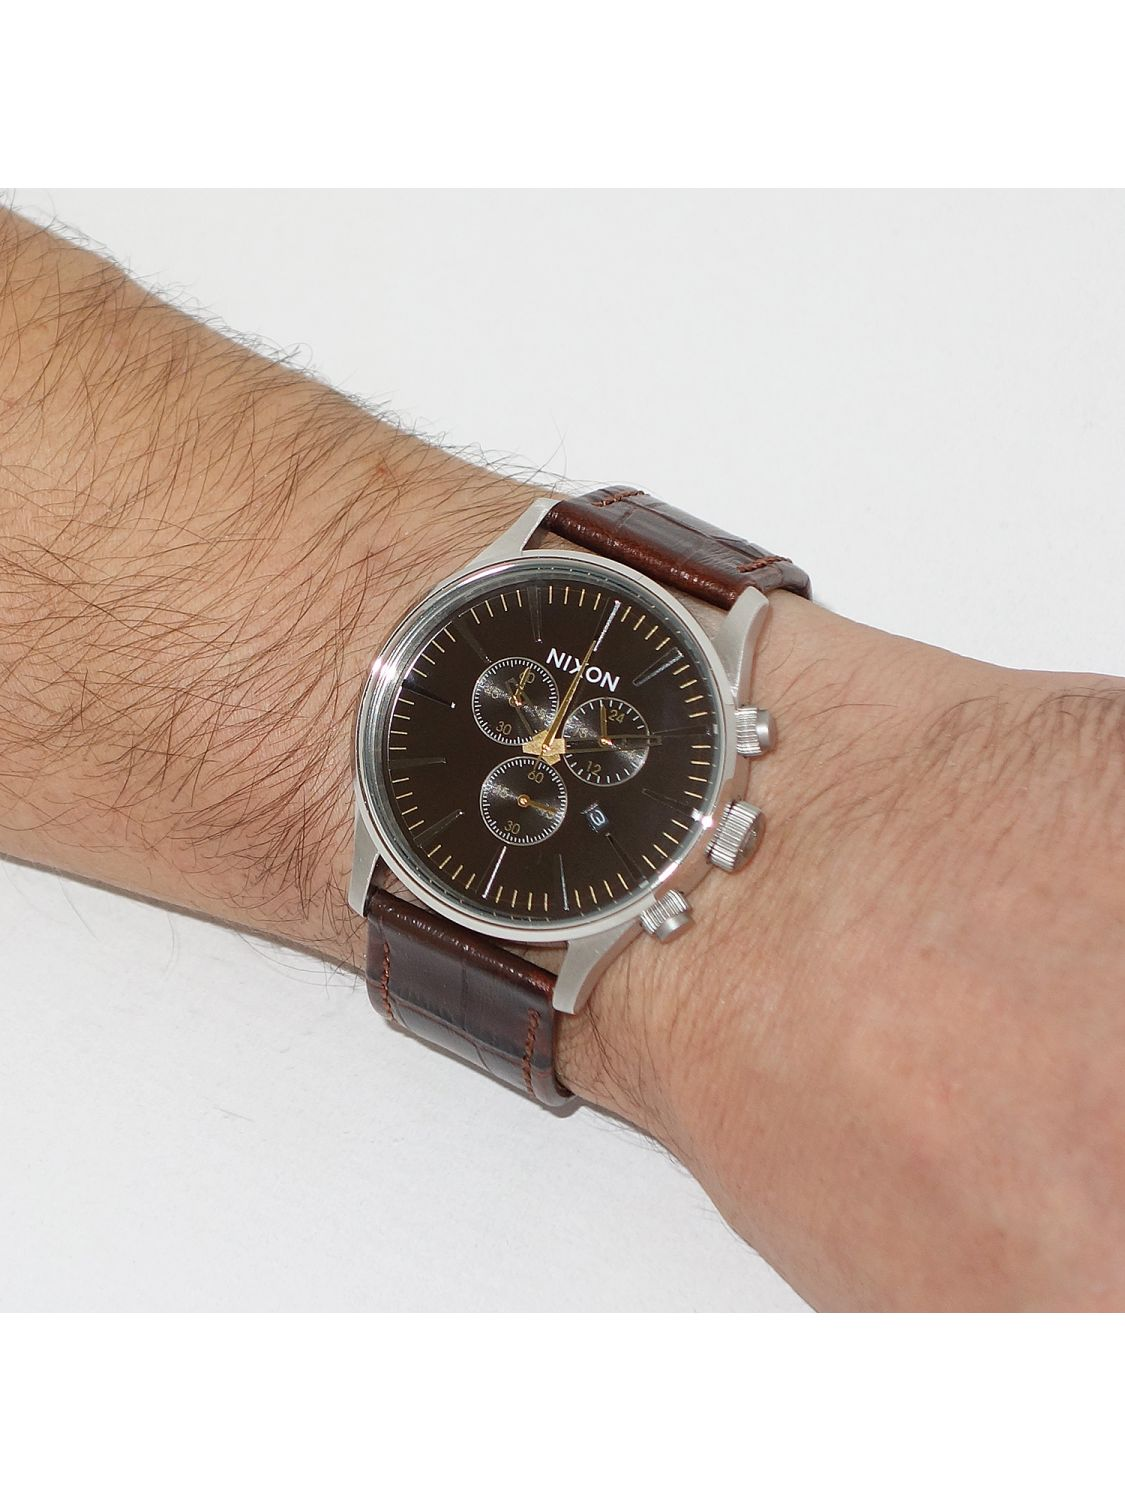 Nixon The Sentry 38 Leather - Zappos.com Free Shipping BOTH Ways